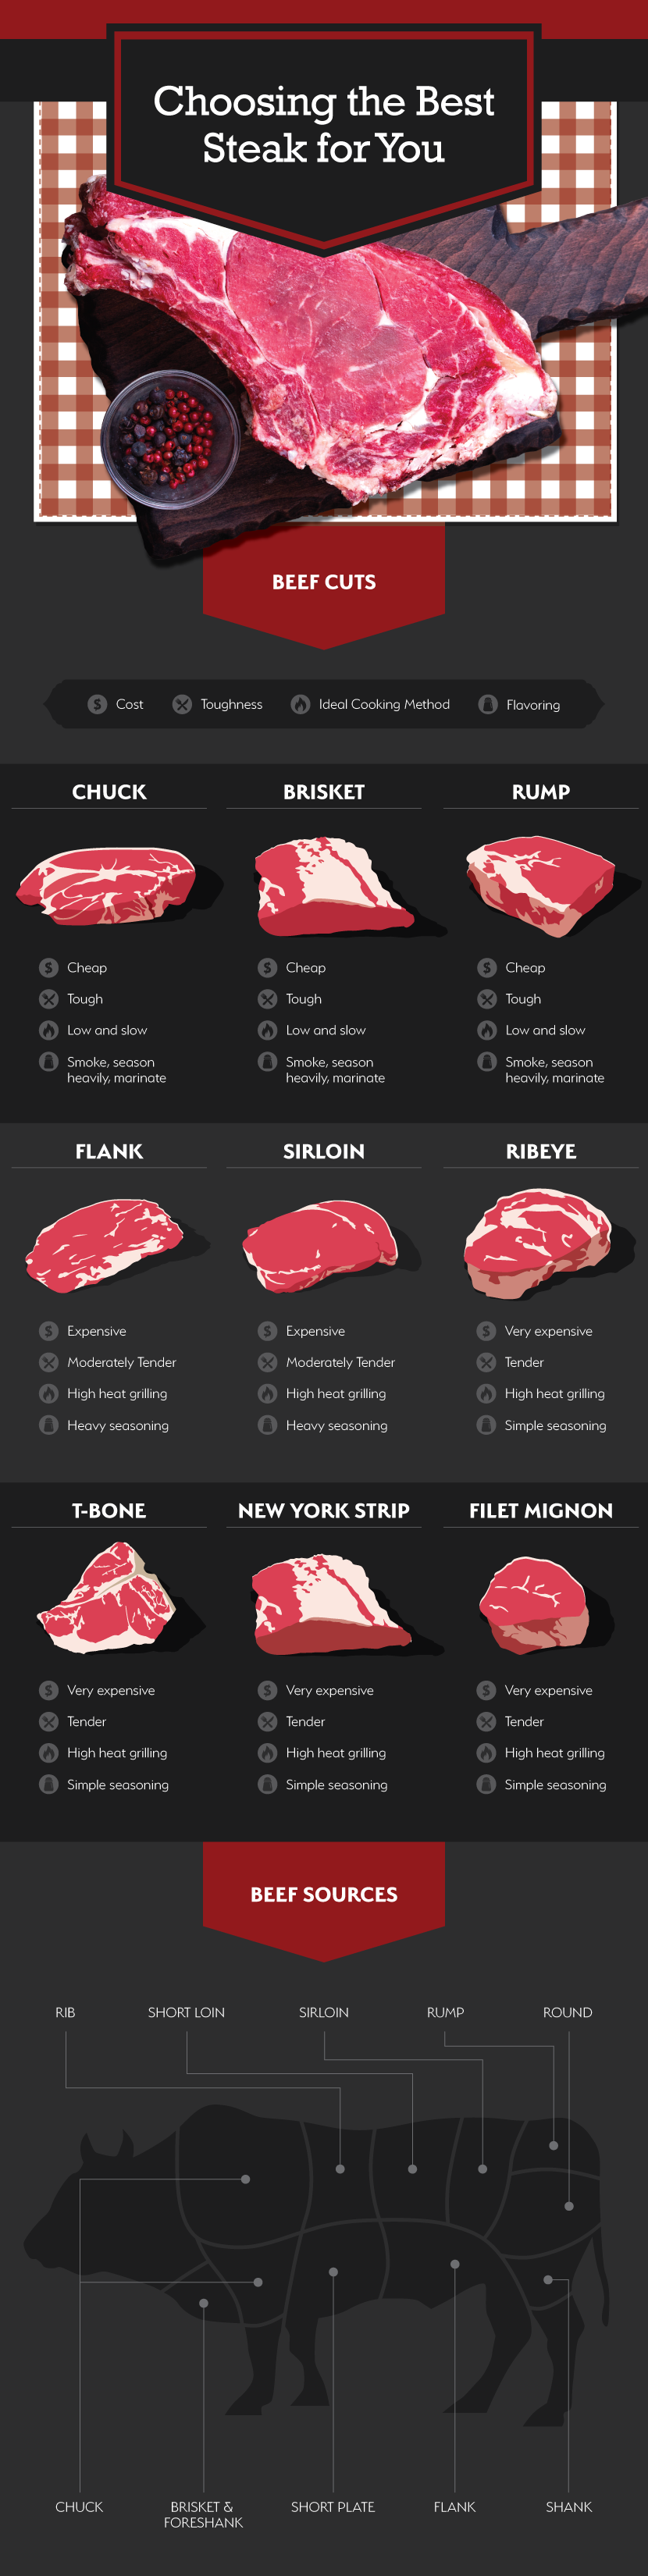 How to Cook Steak - Choosing the Right Steak For You